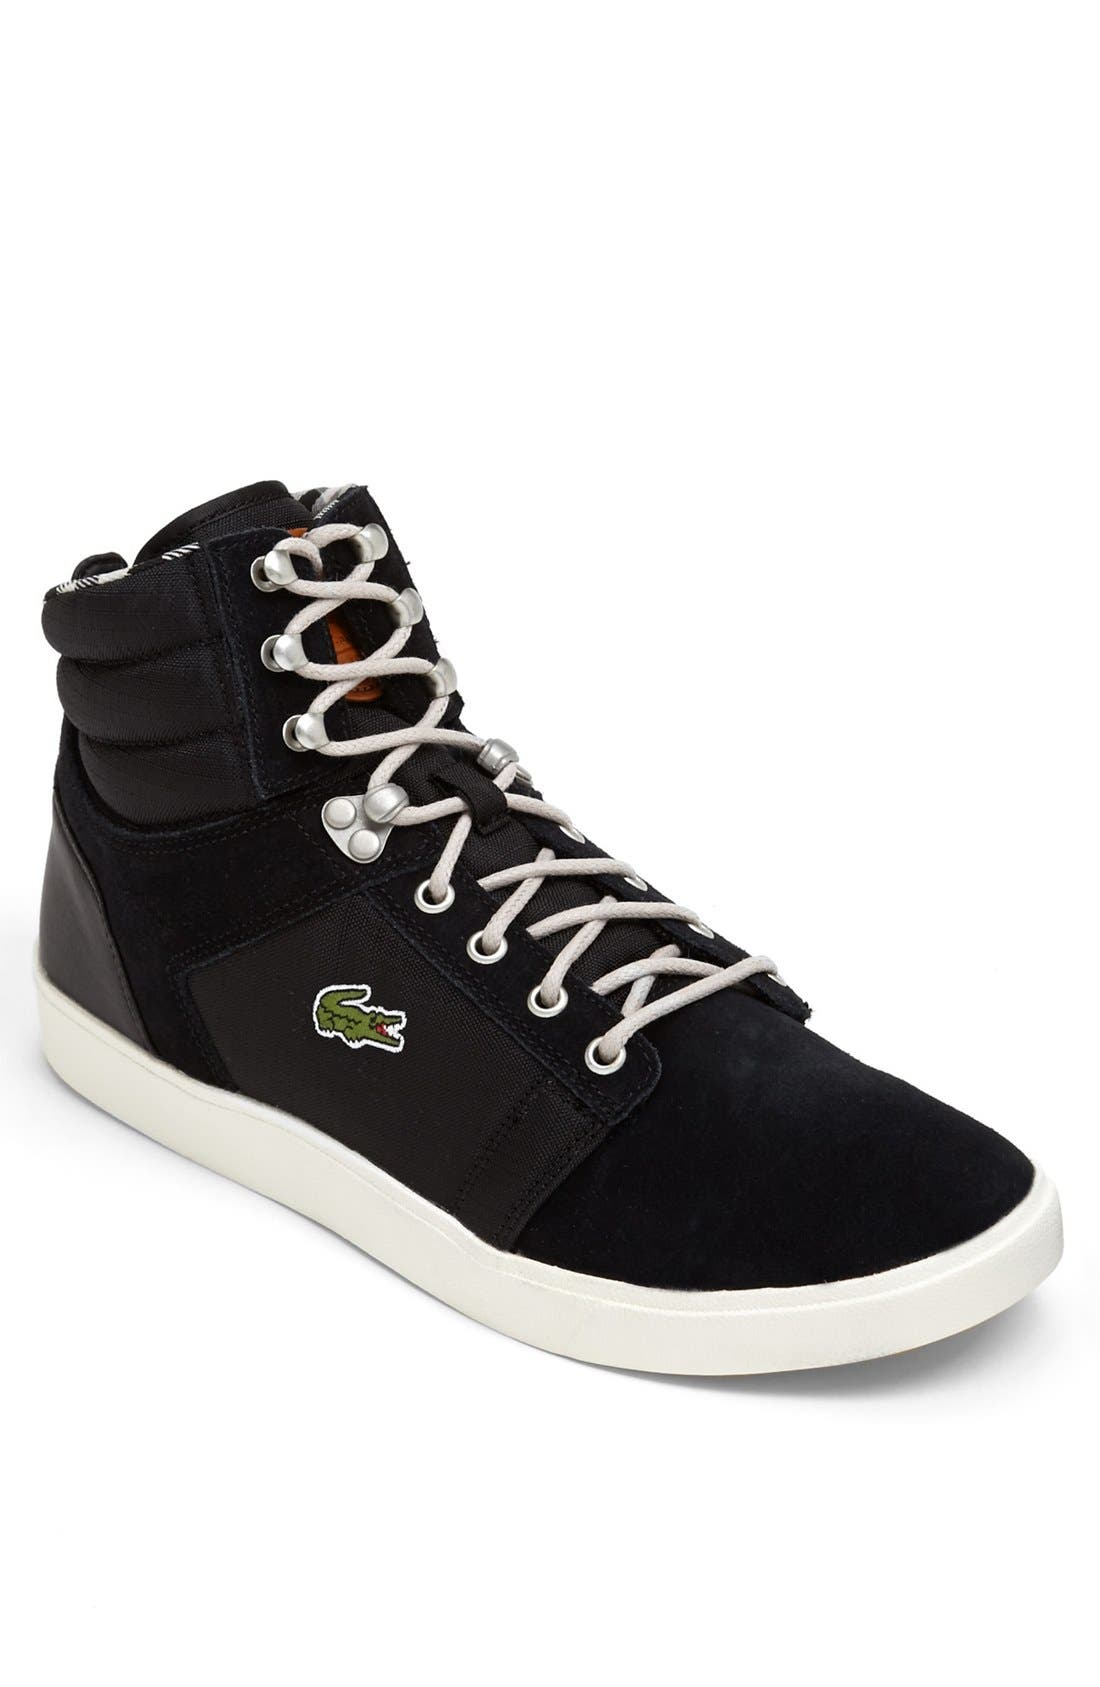 'Orelle' Sneaker, Main, color, 001